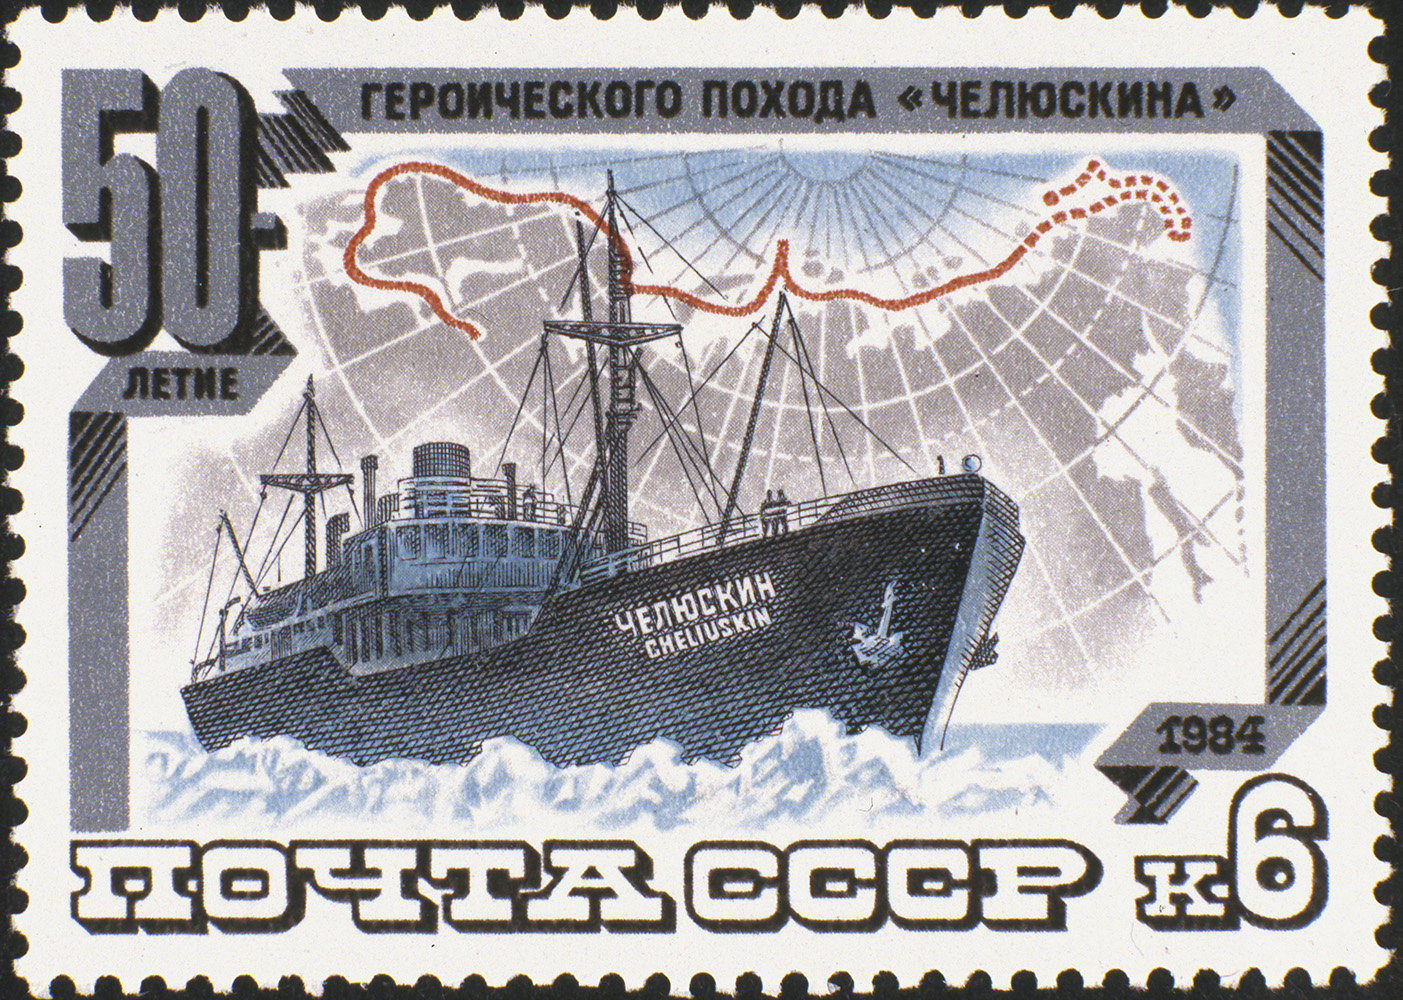 Reproduction of the post stamp 50th Anniversary of the Heroic March of Chelyuskin (1984)